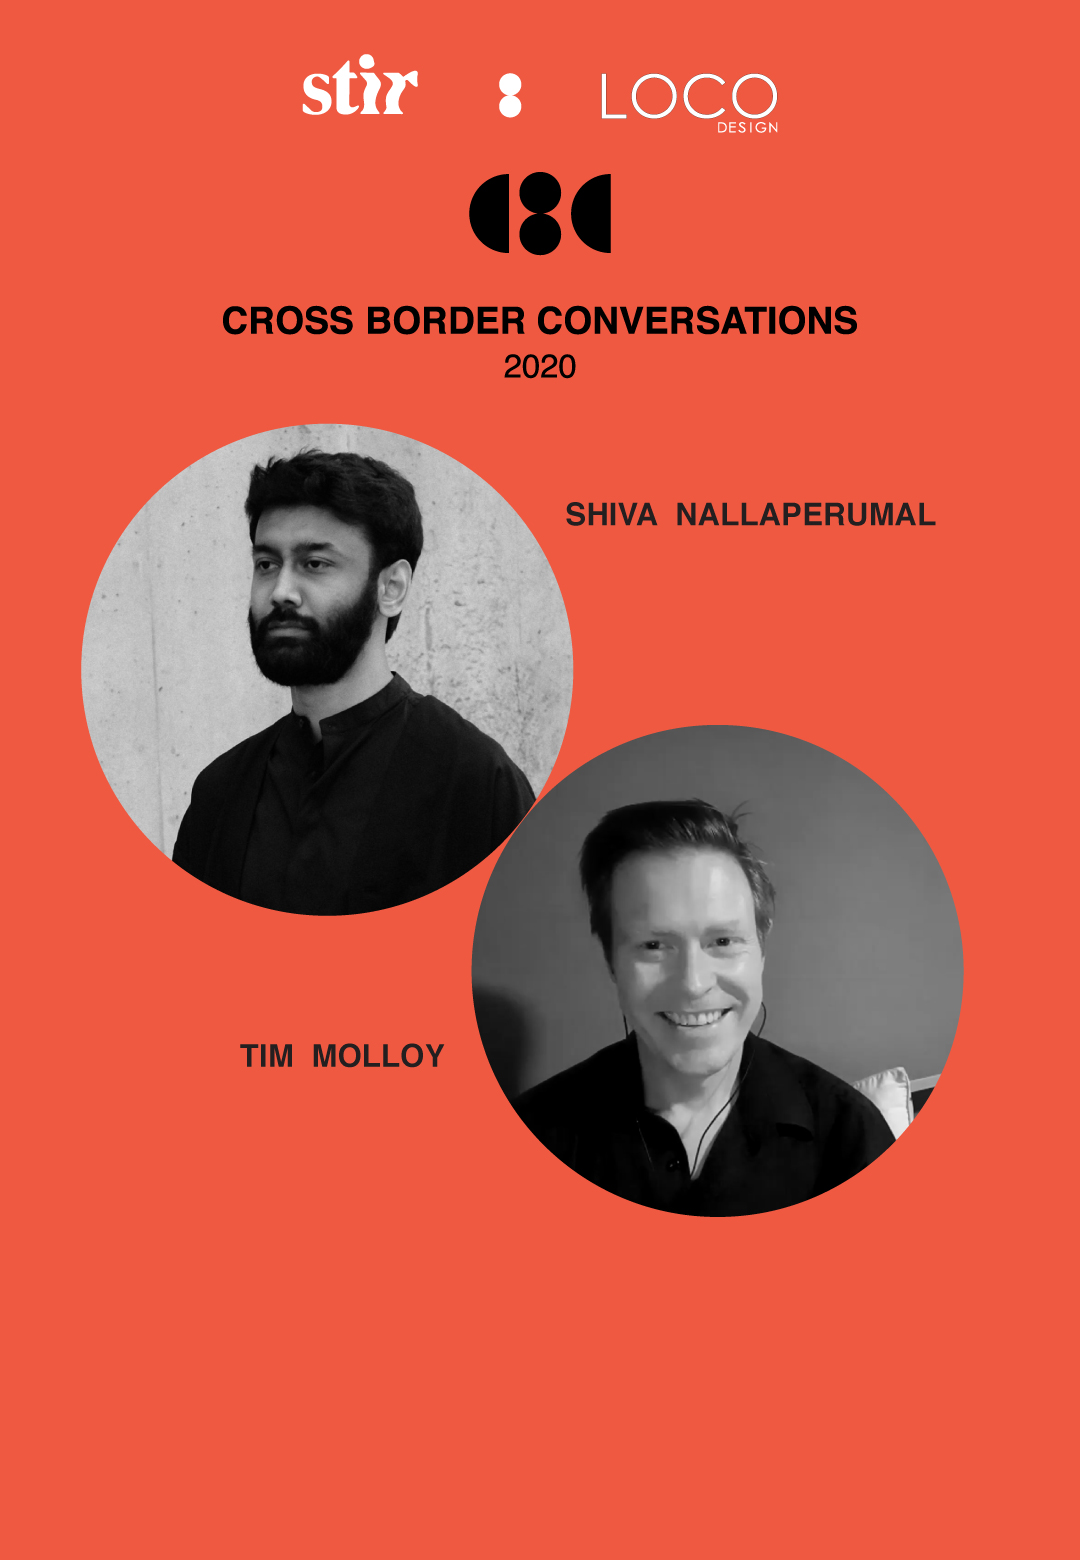 Cross Border Conversations | Shiva Nallaperumal X Tim Molloy | STIR X LOCO Design